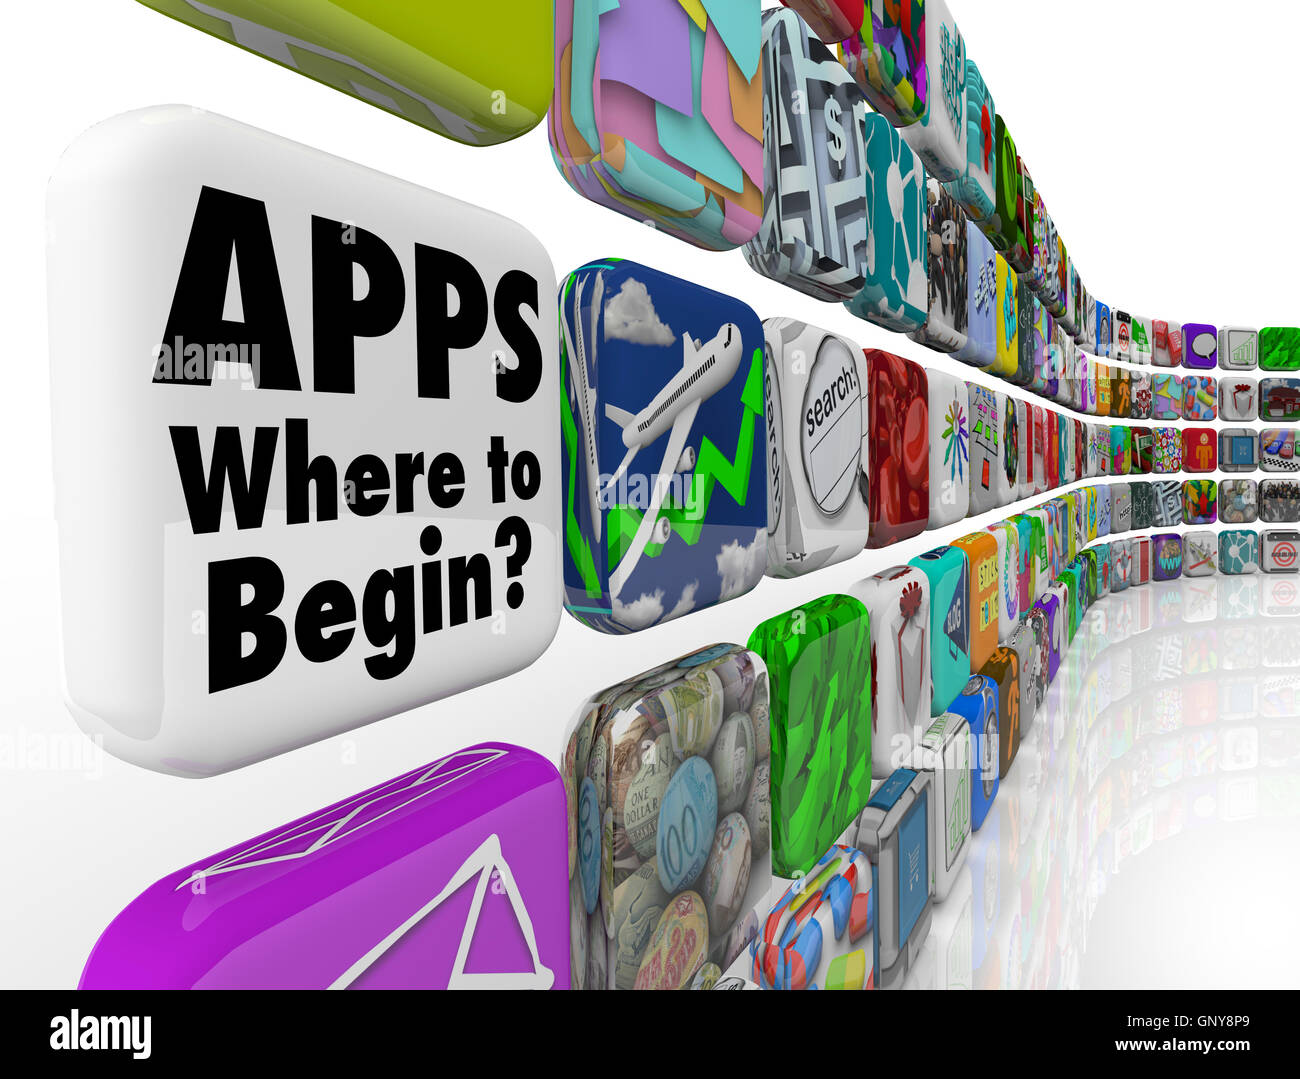 Apps Where to Begin Wall of App Tiles Many Confusing Choices Stock ...